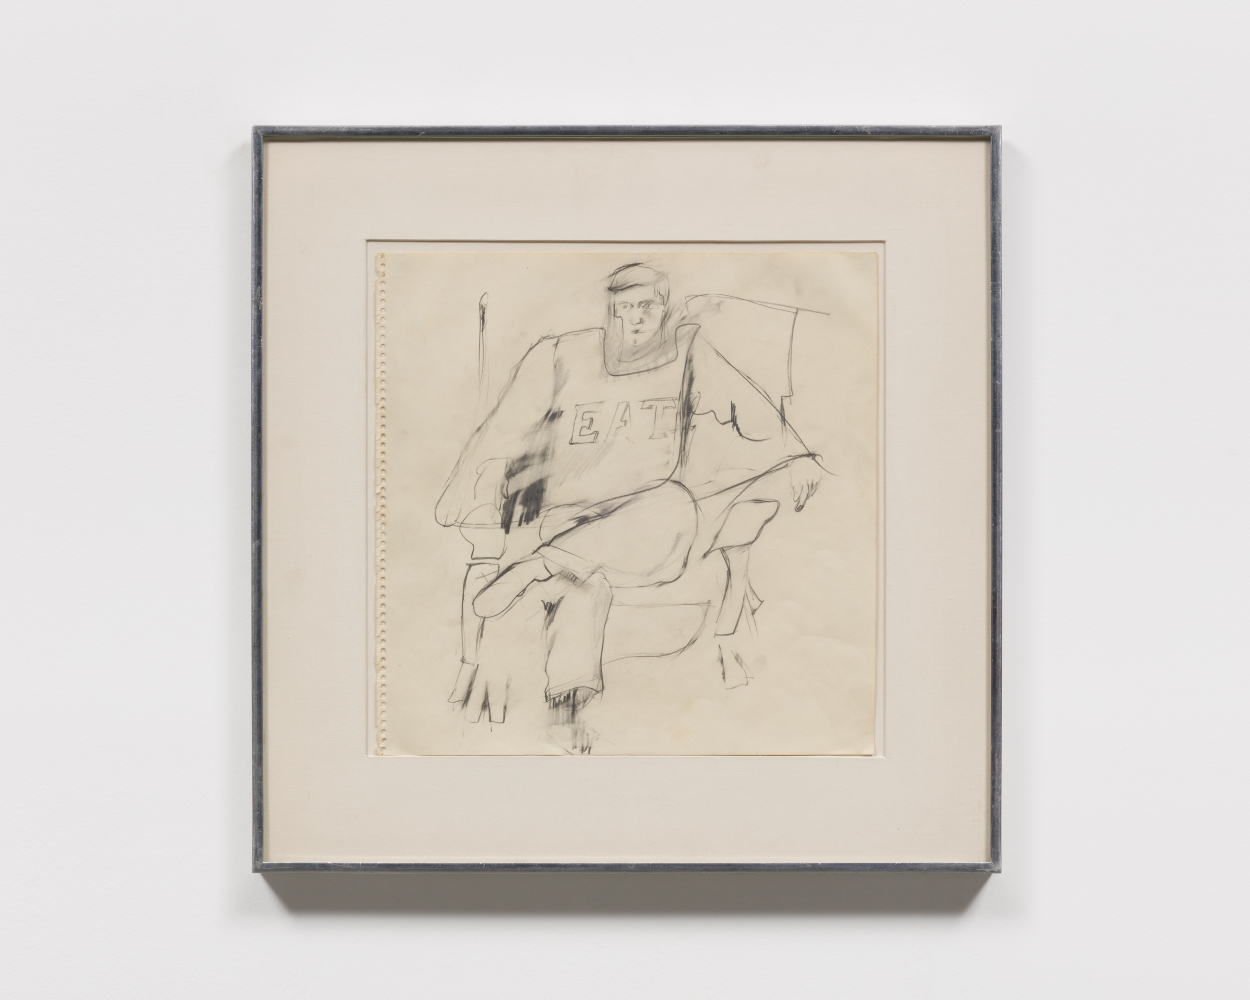 """Graphite drawing of a seated figure wearing a shirt in """"EAT"""" lettering"""